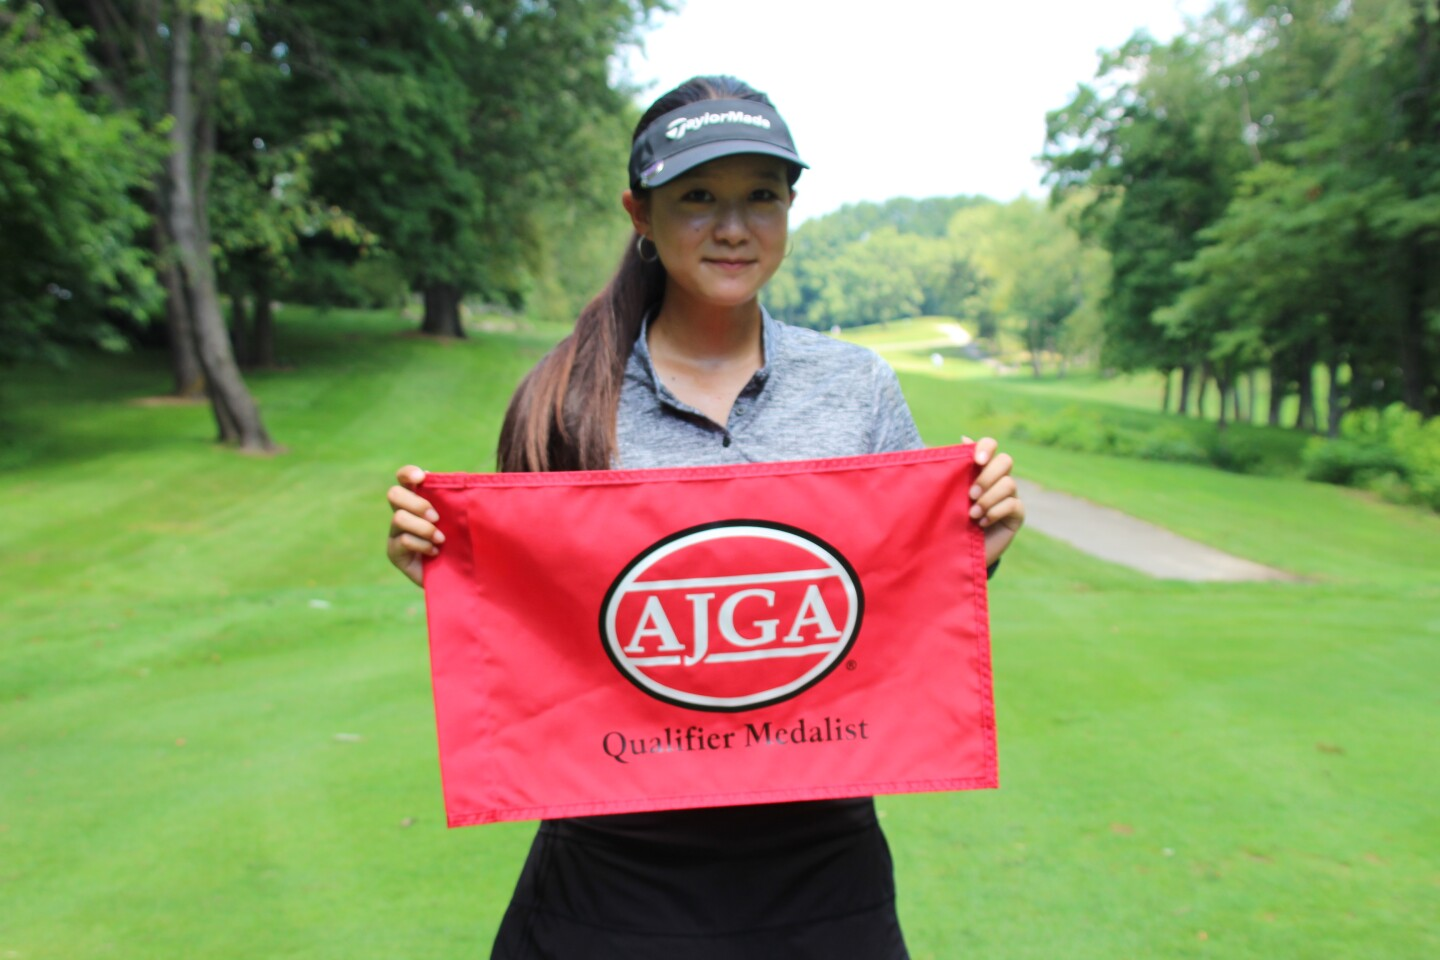 Alissa Xu with qualifier madalist flag -2021 Junior at Knollwood presented by Yoder Oil.JPG